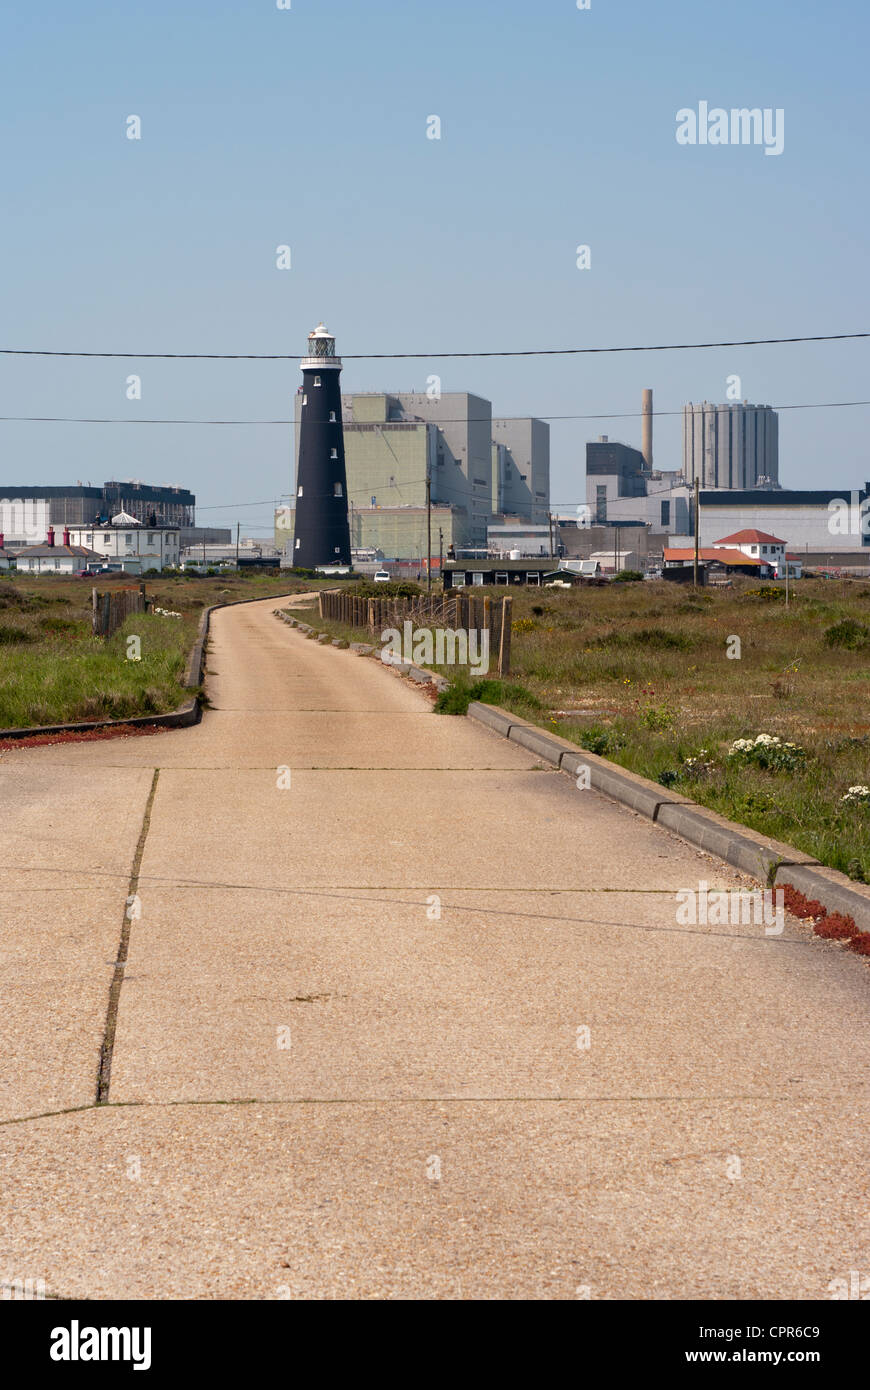 Dungeness Nuclear Power Station Kent Uk with The Old Lighthouse In The Foreground Seen Through Summer Heat Haze - Stock Image